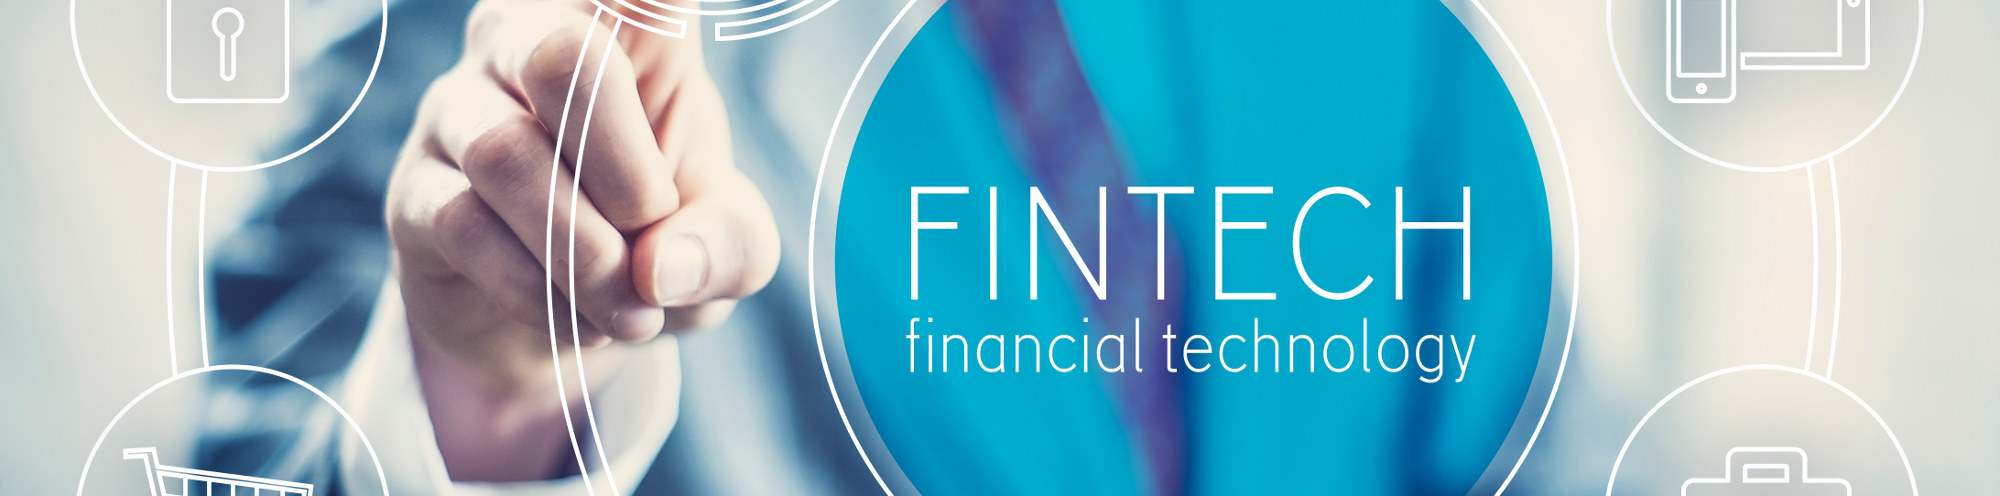 man pointing to fintech